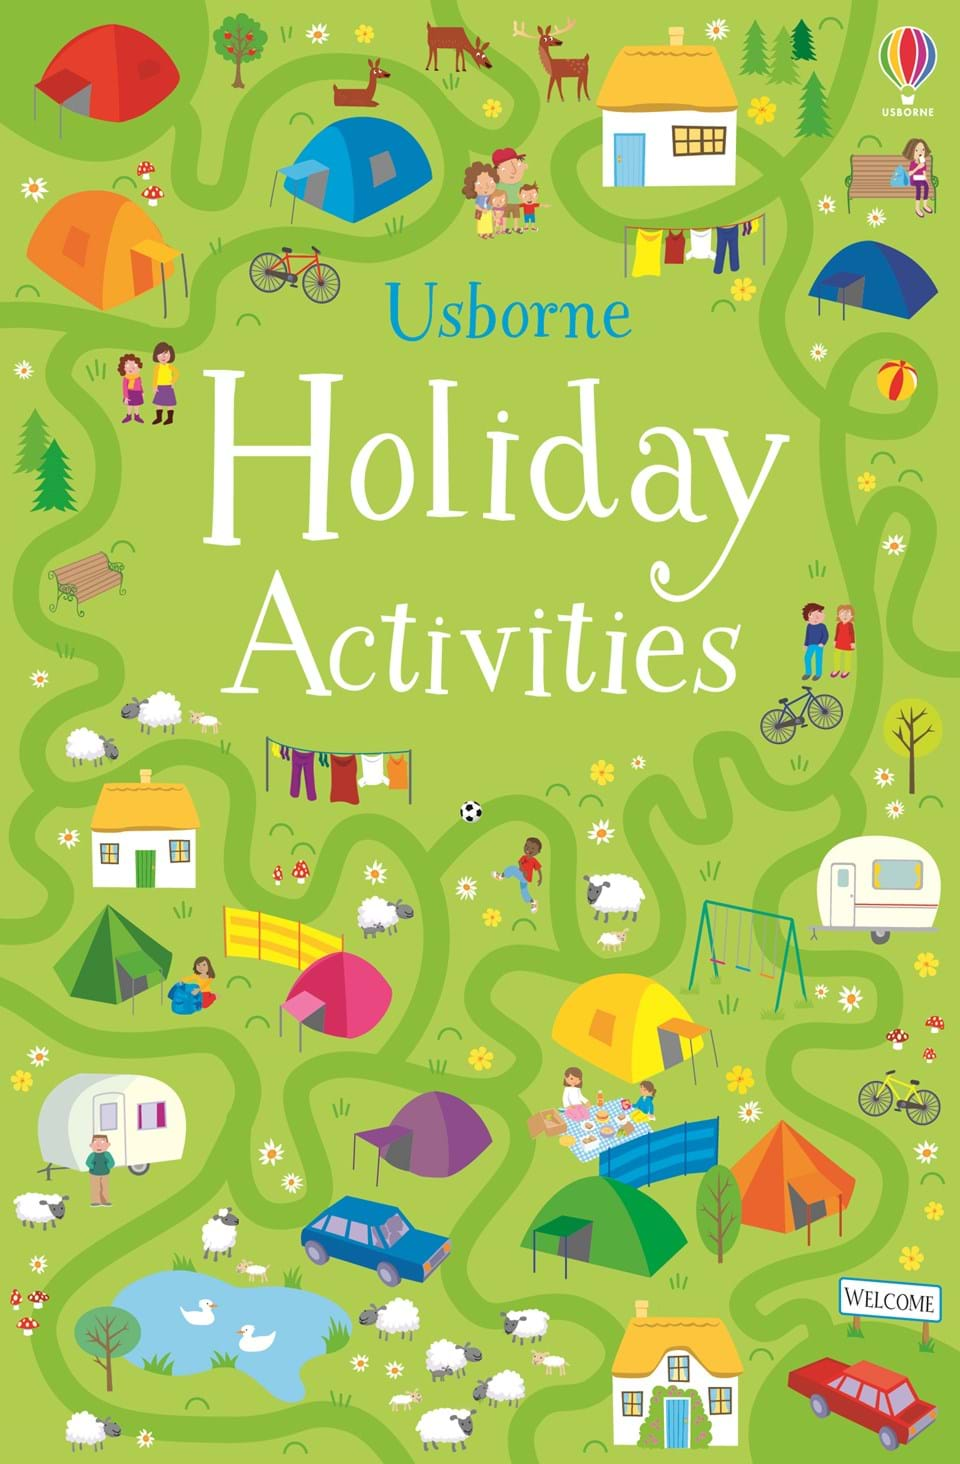 Holiday activities at usborne books at home for Activities to do on christmas day at home